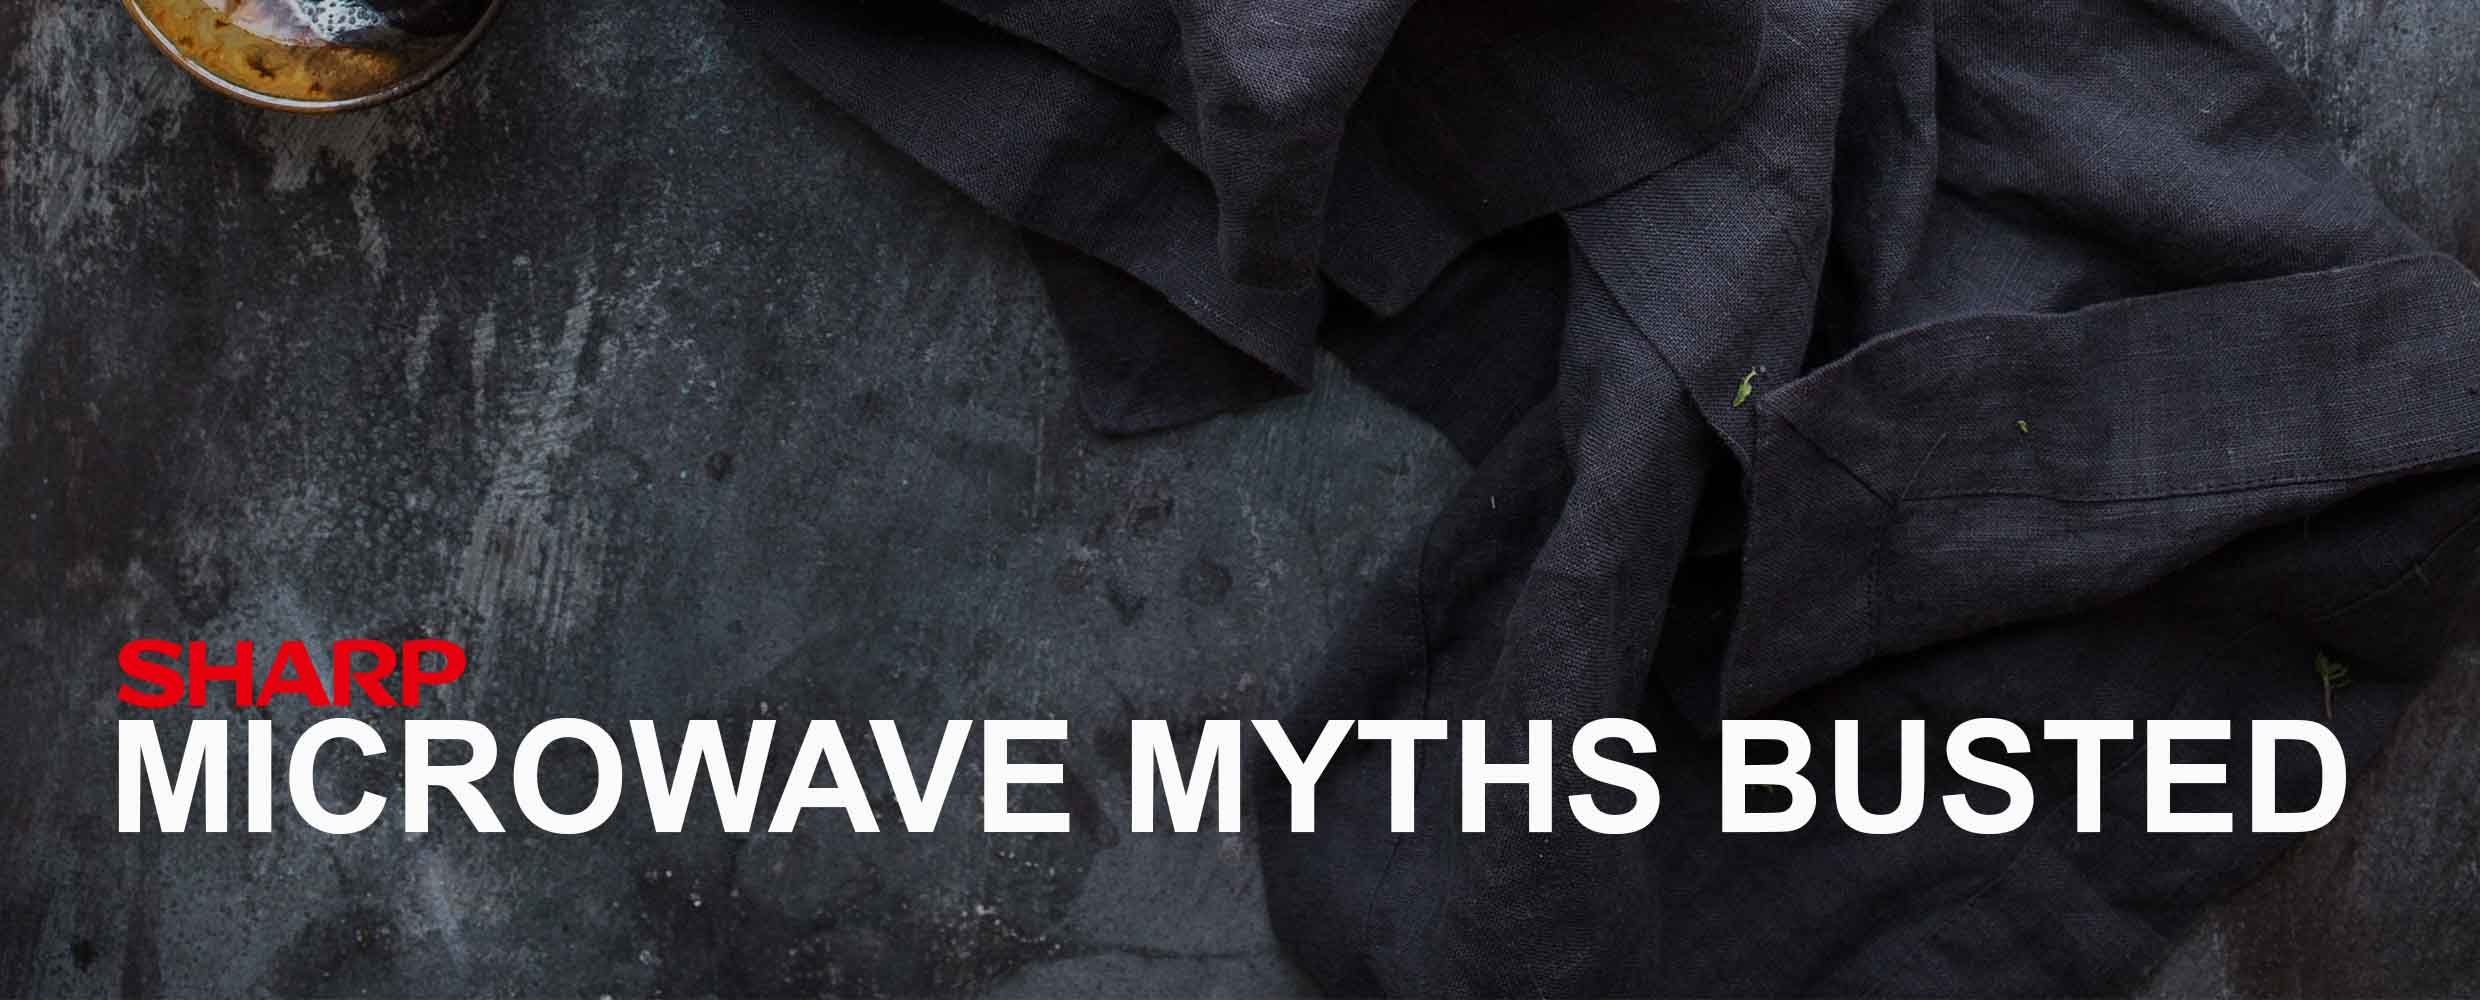 ARTICLE-BANNER - MICROWAVE-MYTHS-BUSTED